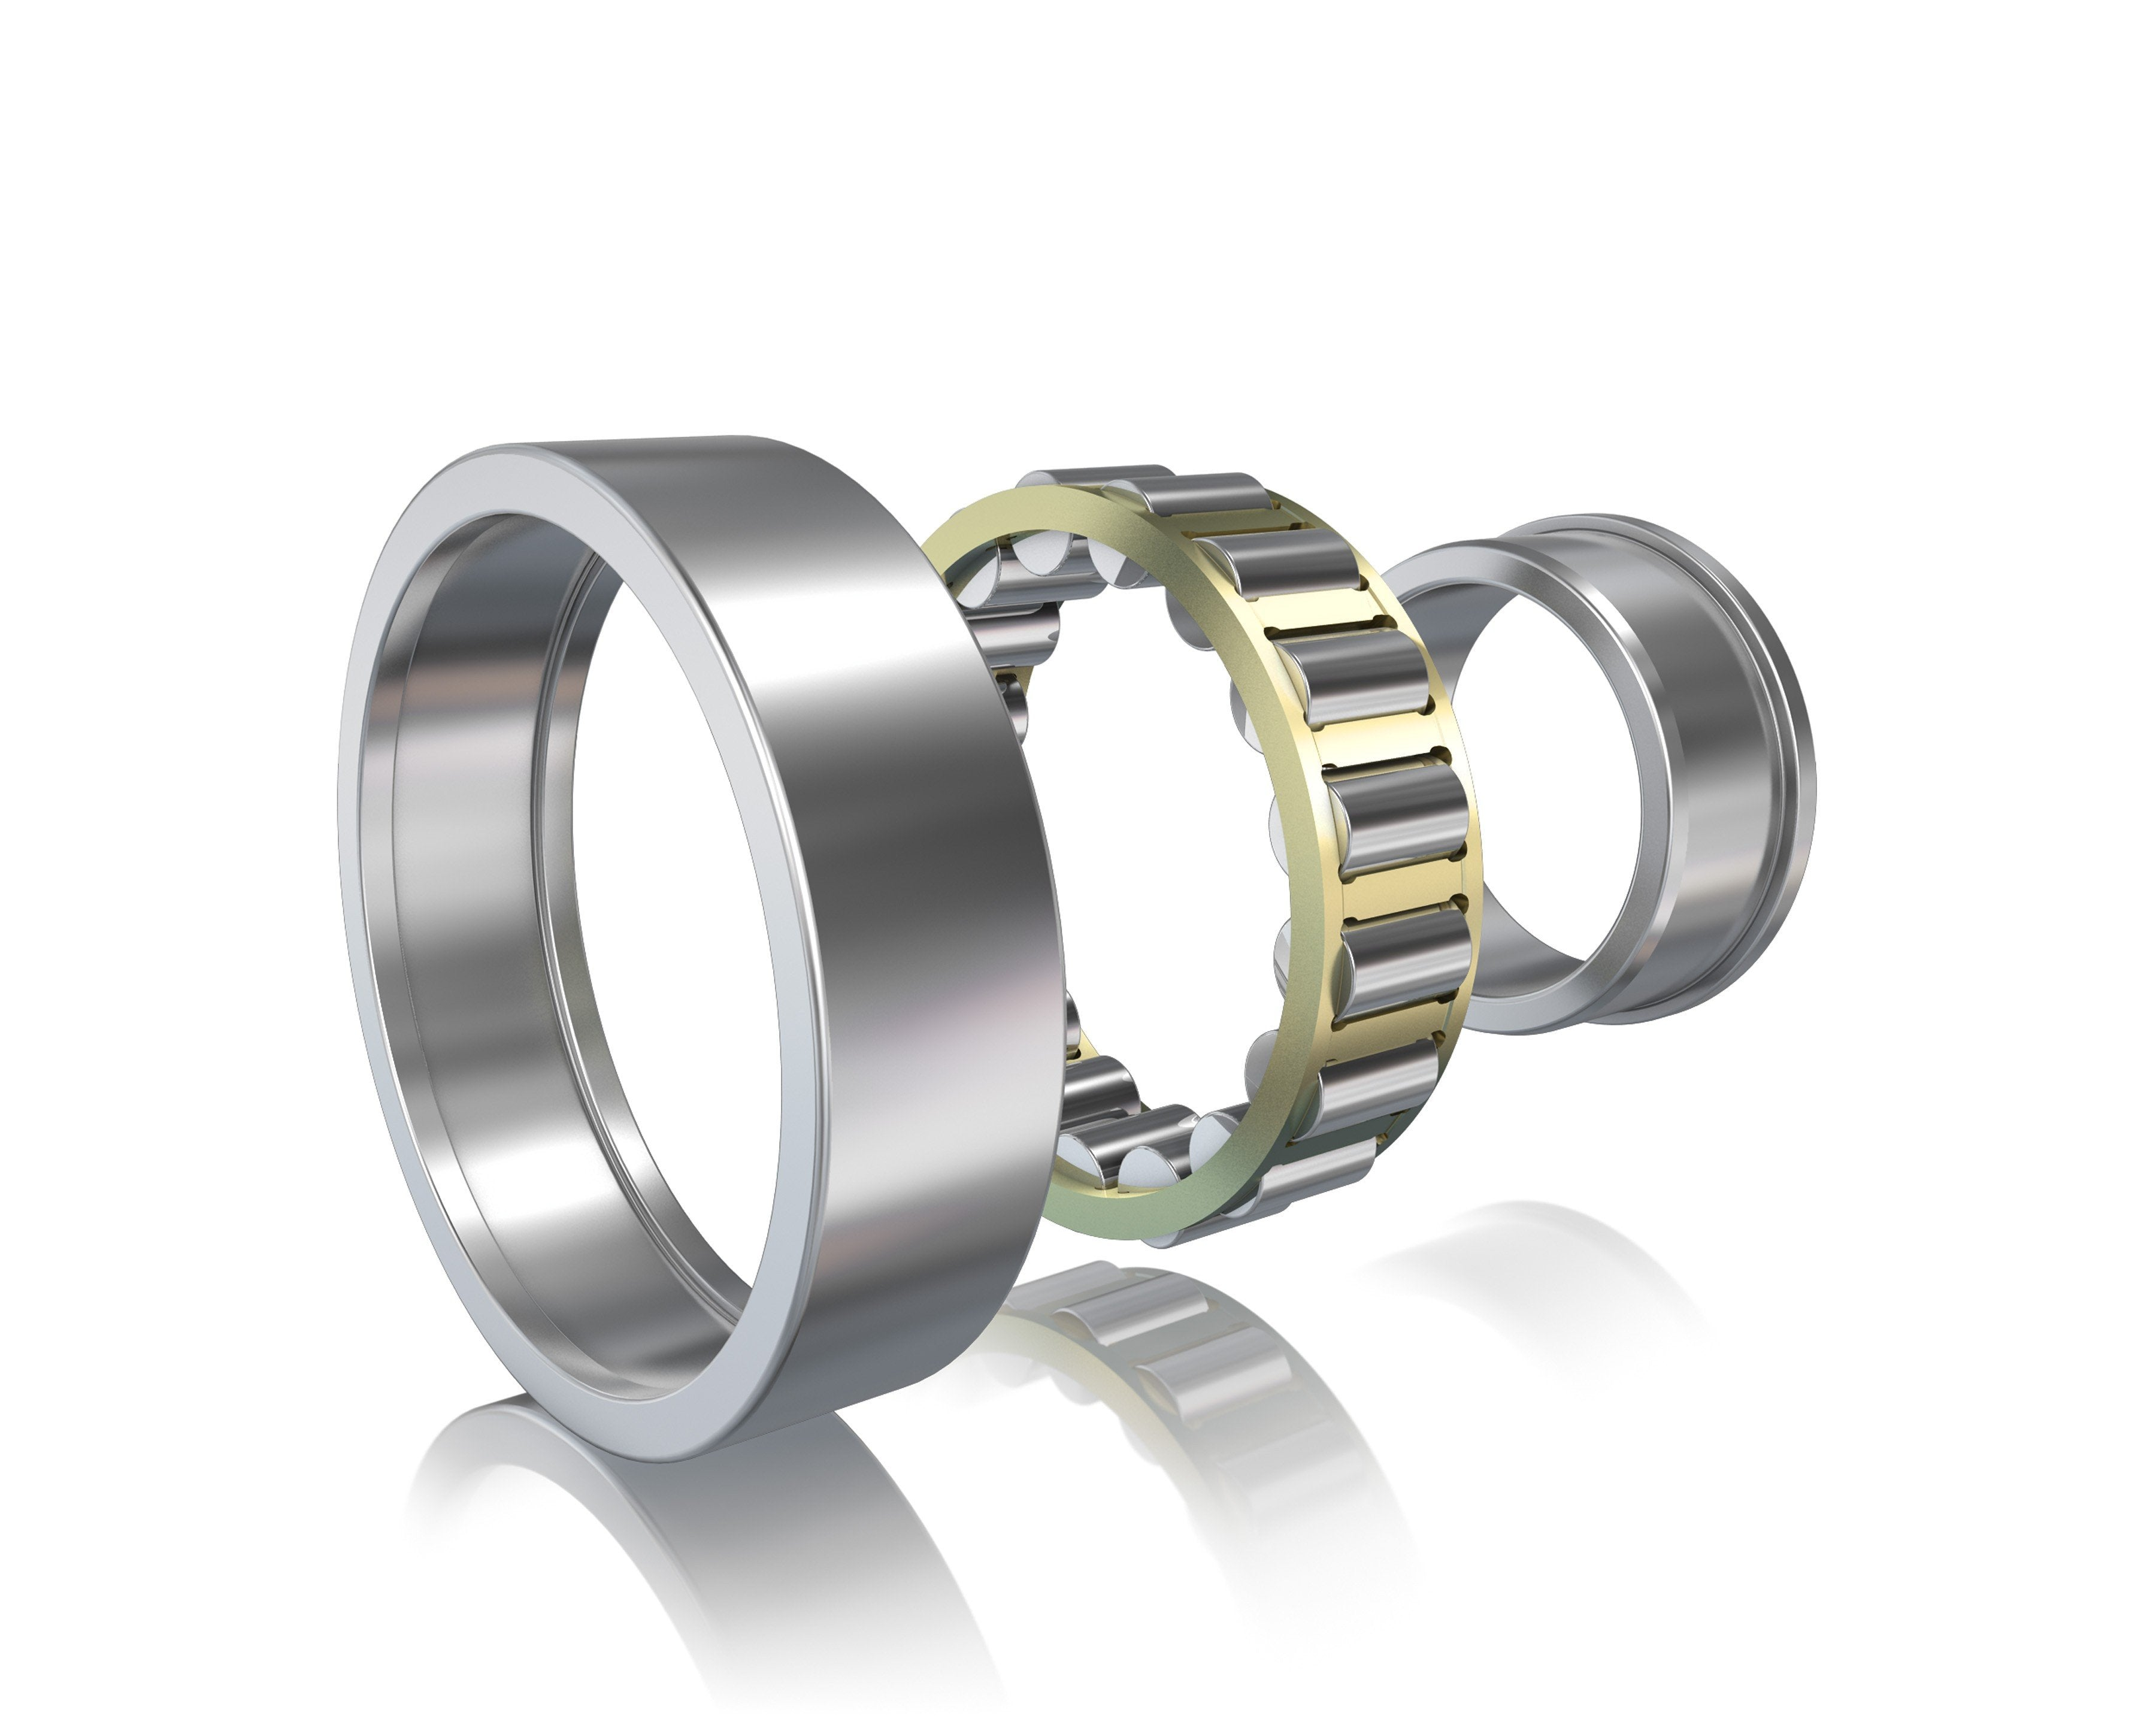 NJ2215-ECP-SKF, Bearings, Cylindrical roller bearings